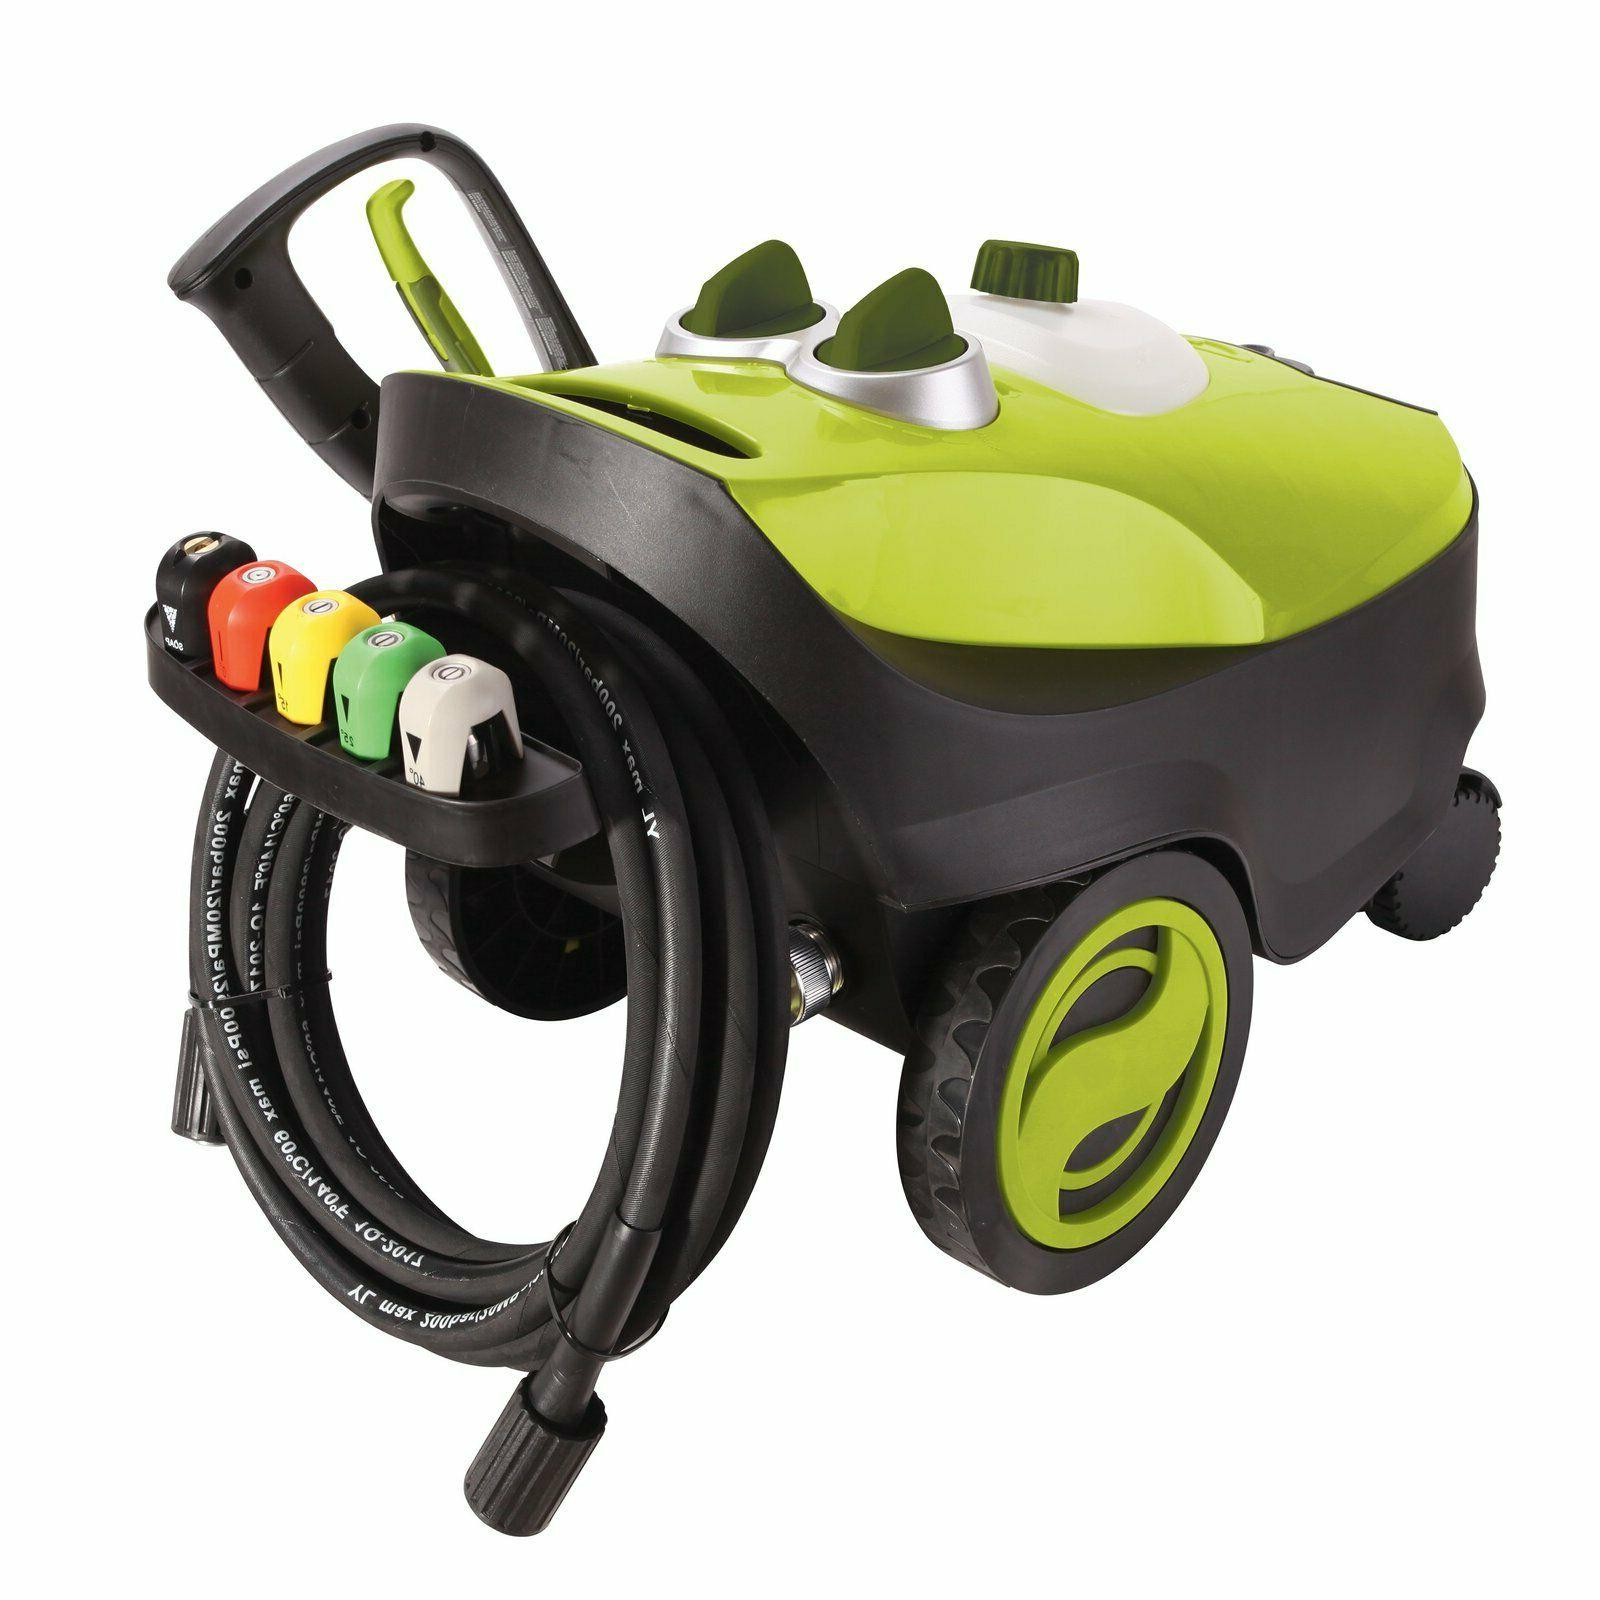 Compact Electric Pressure Washer Deck Patio Garage